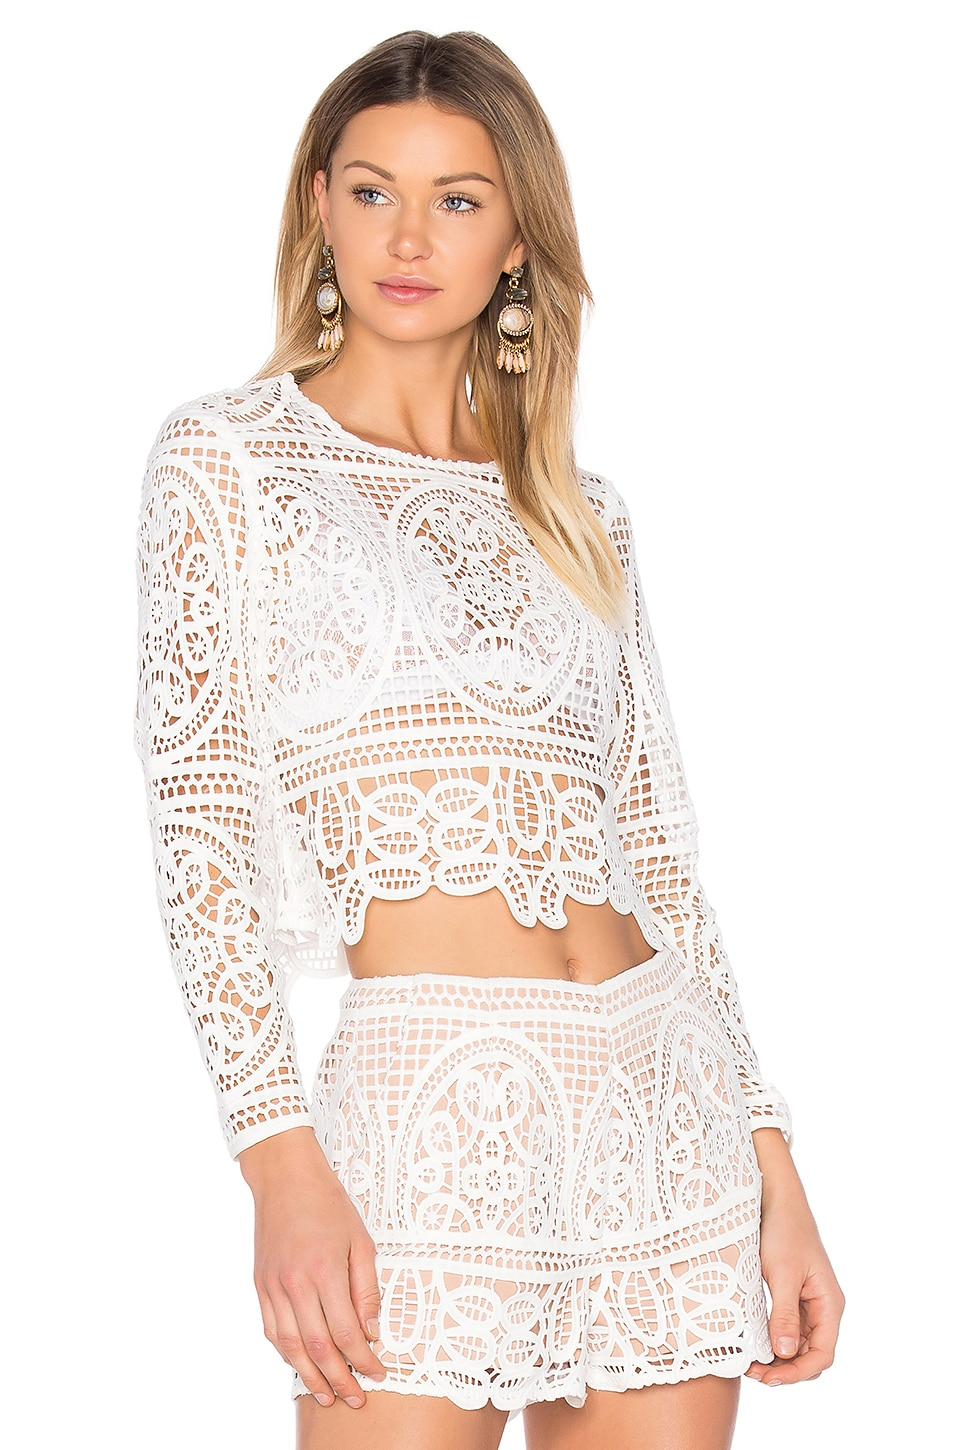 aijek Blackjack Embroidered Cropped Blouse in White